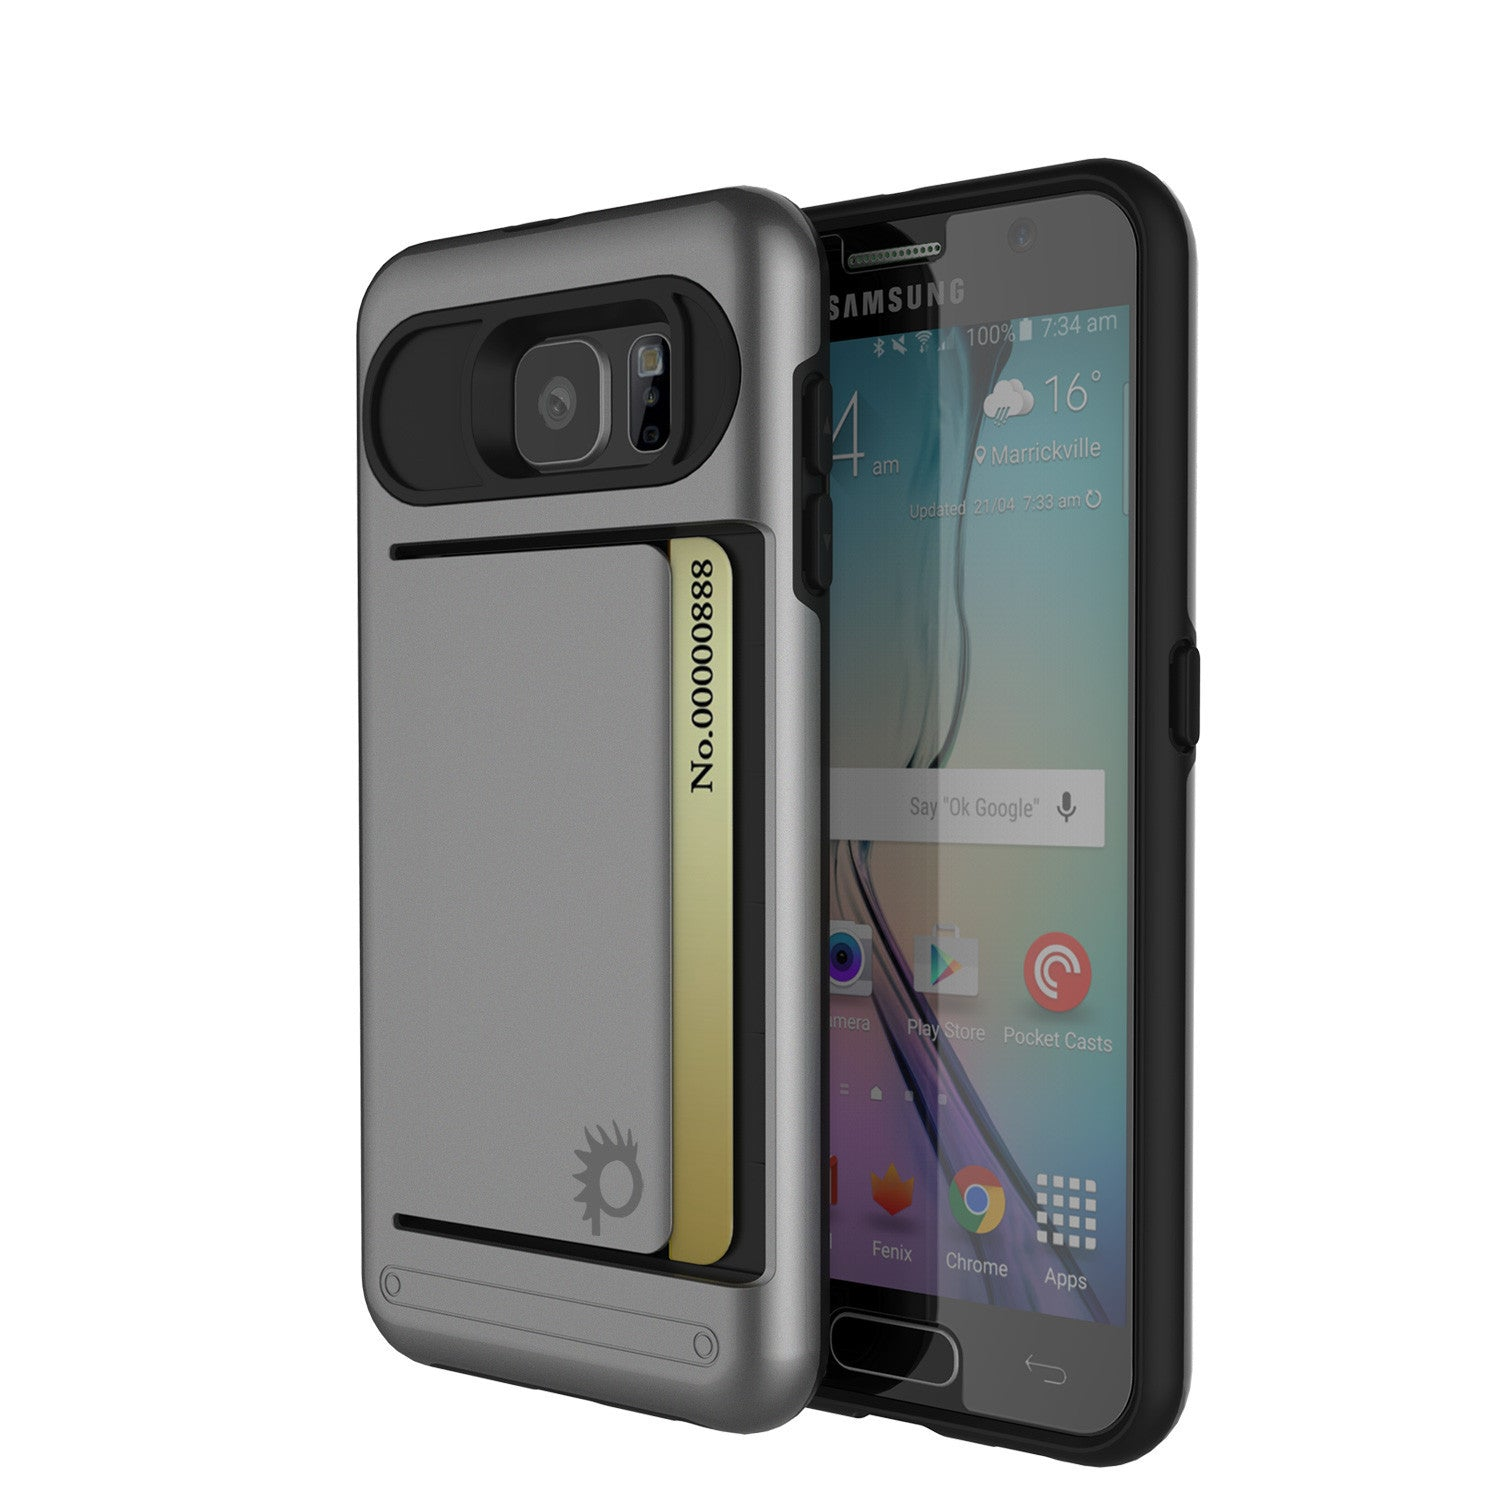 Galaxy s6 Case PunkCase CLUTCH Grey Series Slim Armor Soft Cover Case w/ Tempered Glass